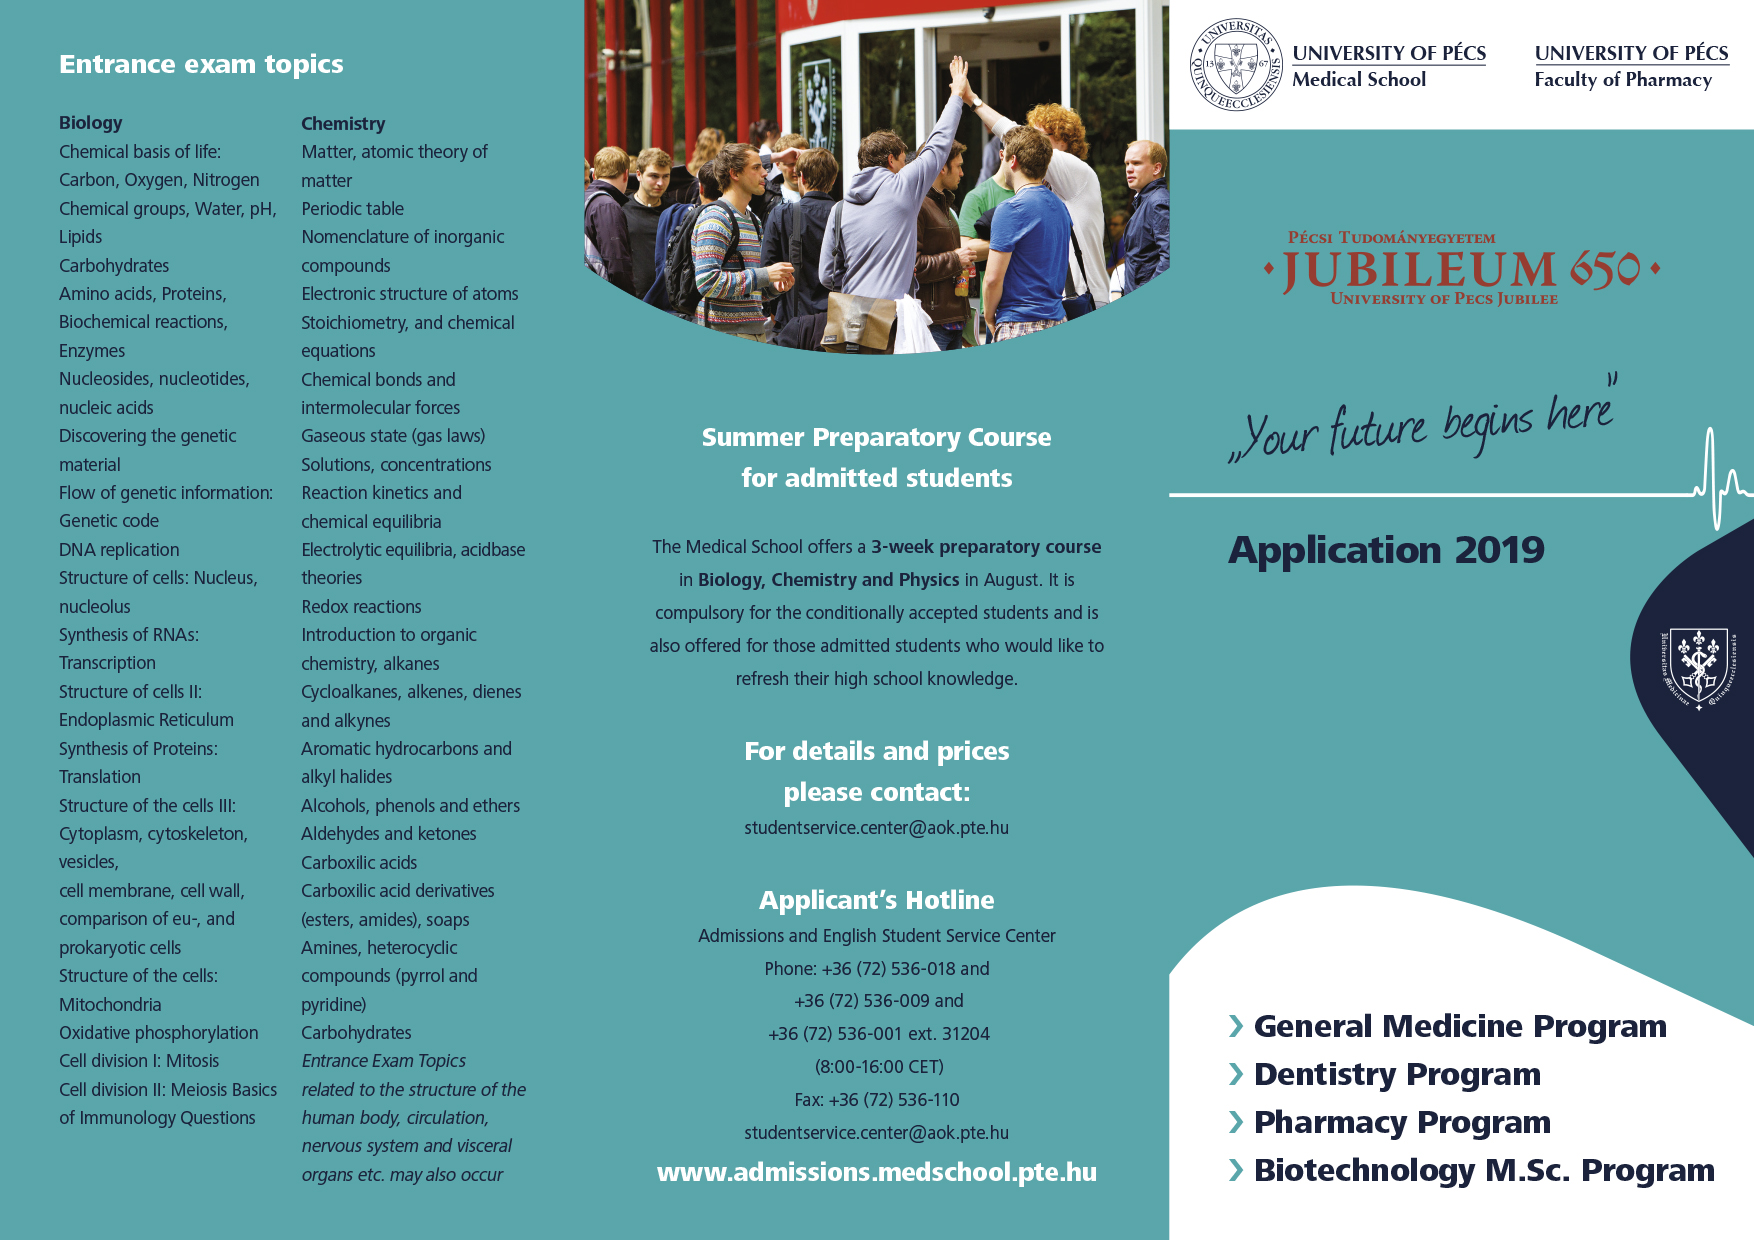 BMAT for Medical School Admission